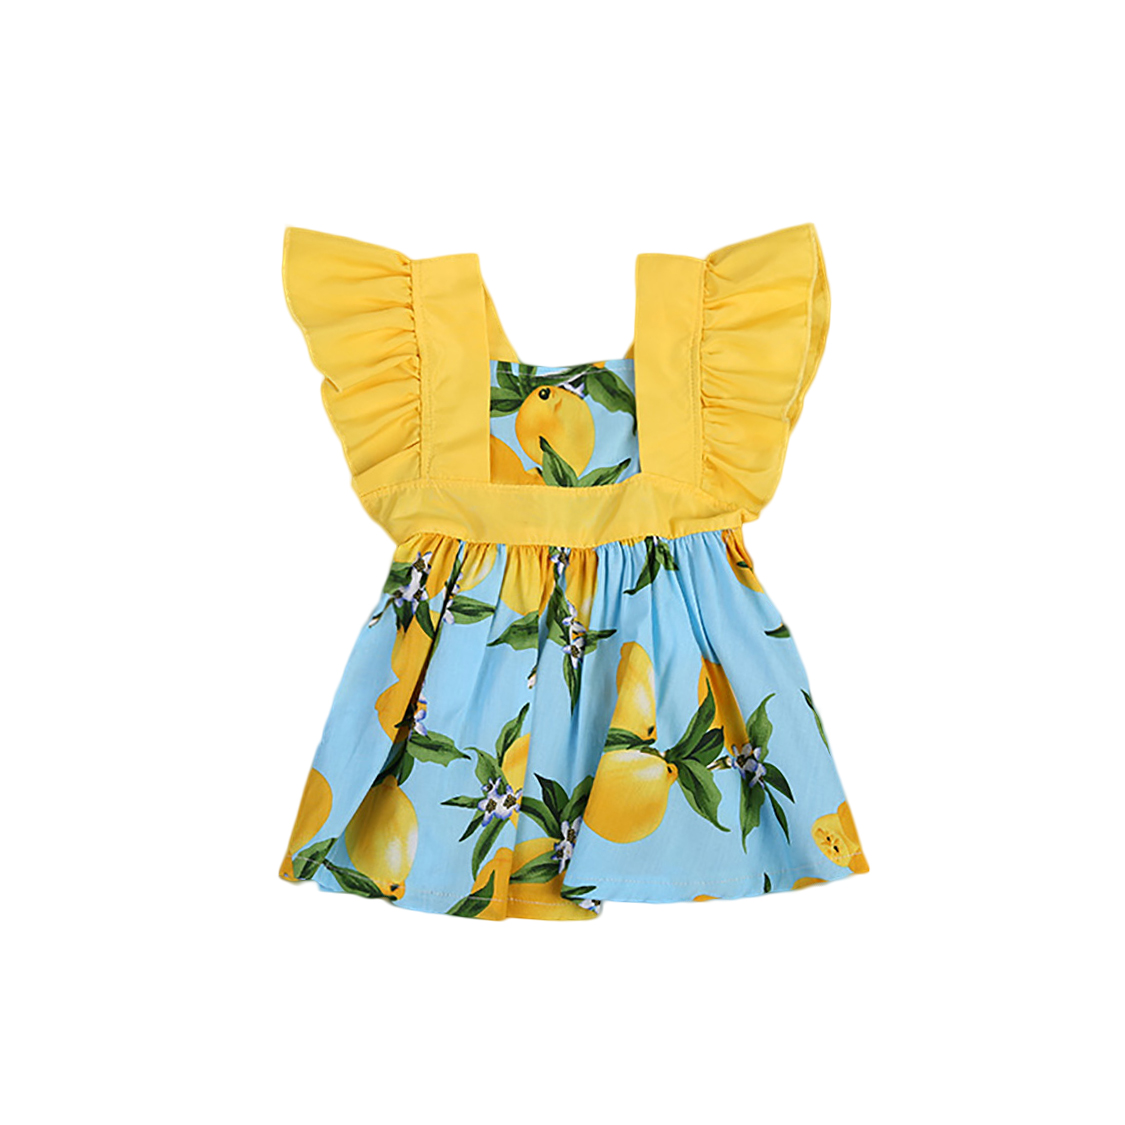 Summer Baby Kids Girls Princess Floral Ruffle Sleeveless Vestido Wedding Party Dress Sundress Kids Toddler Girl Clothing 0-4Y baby girls infant wedding party bowknot sleeveless ruffled vest dress sundress